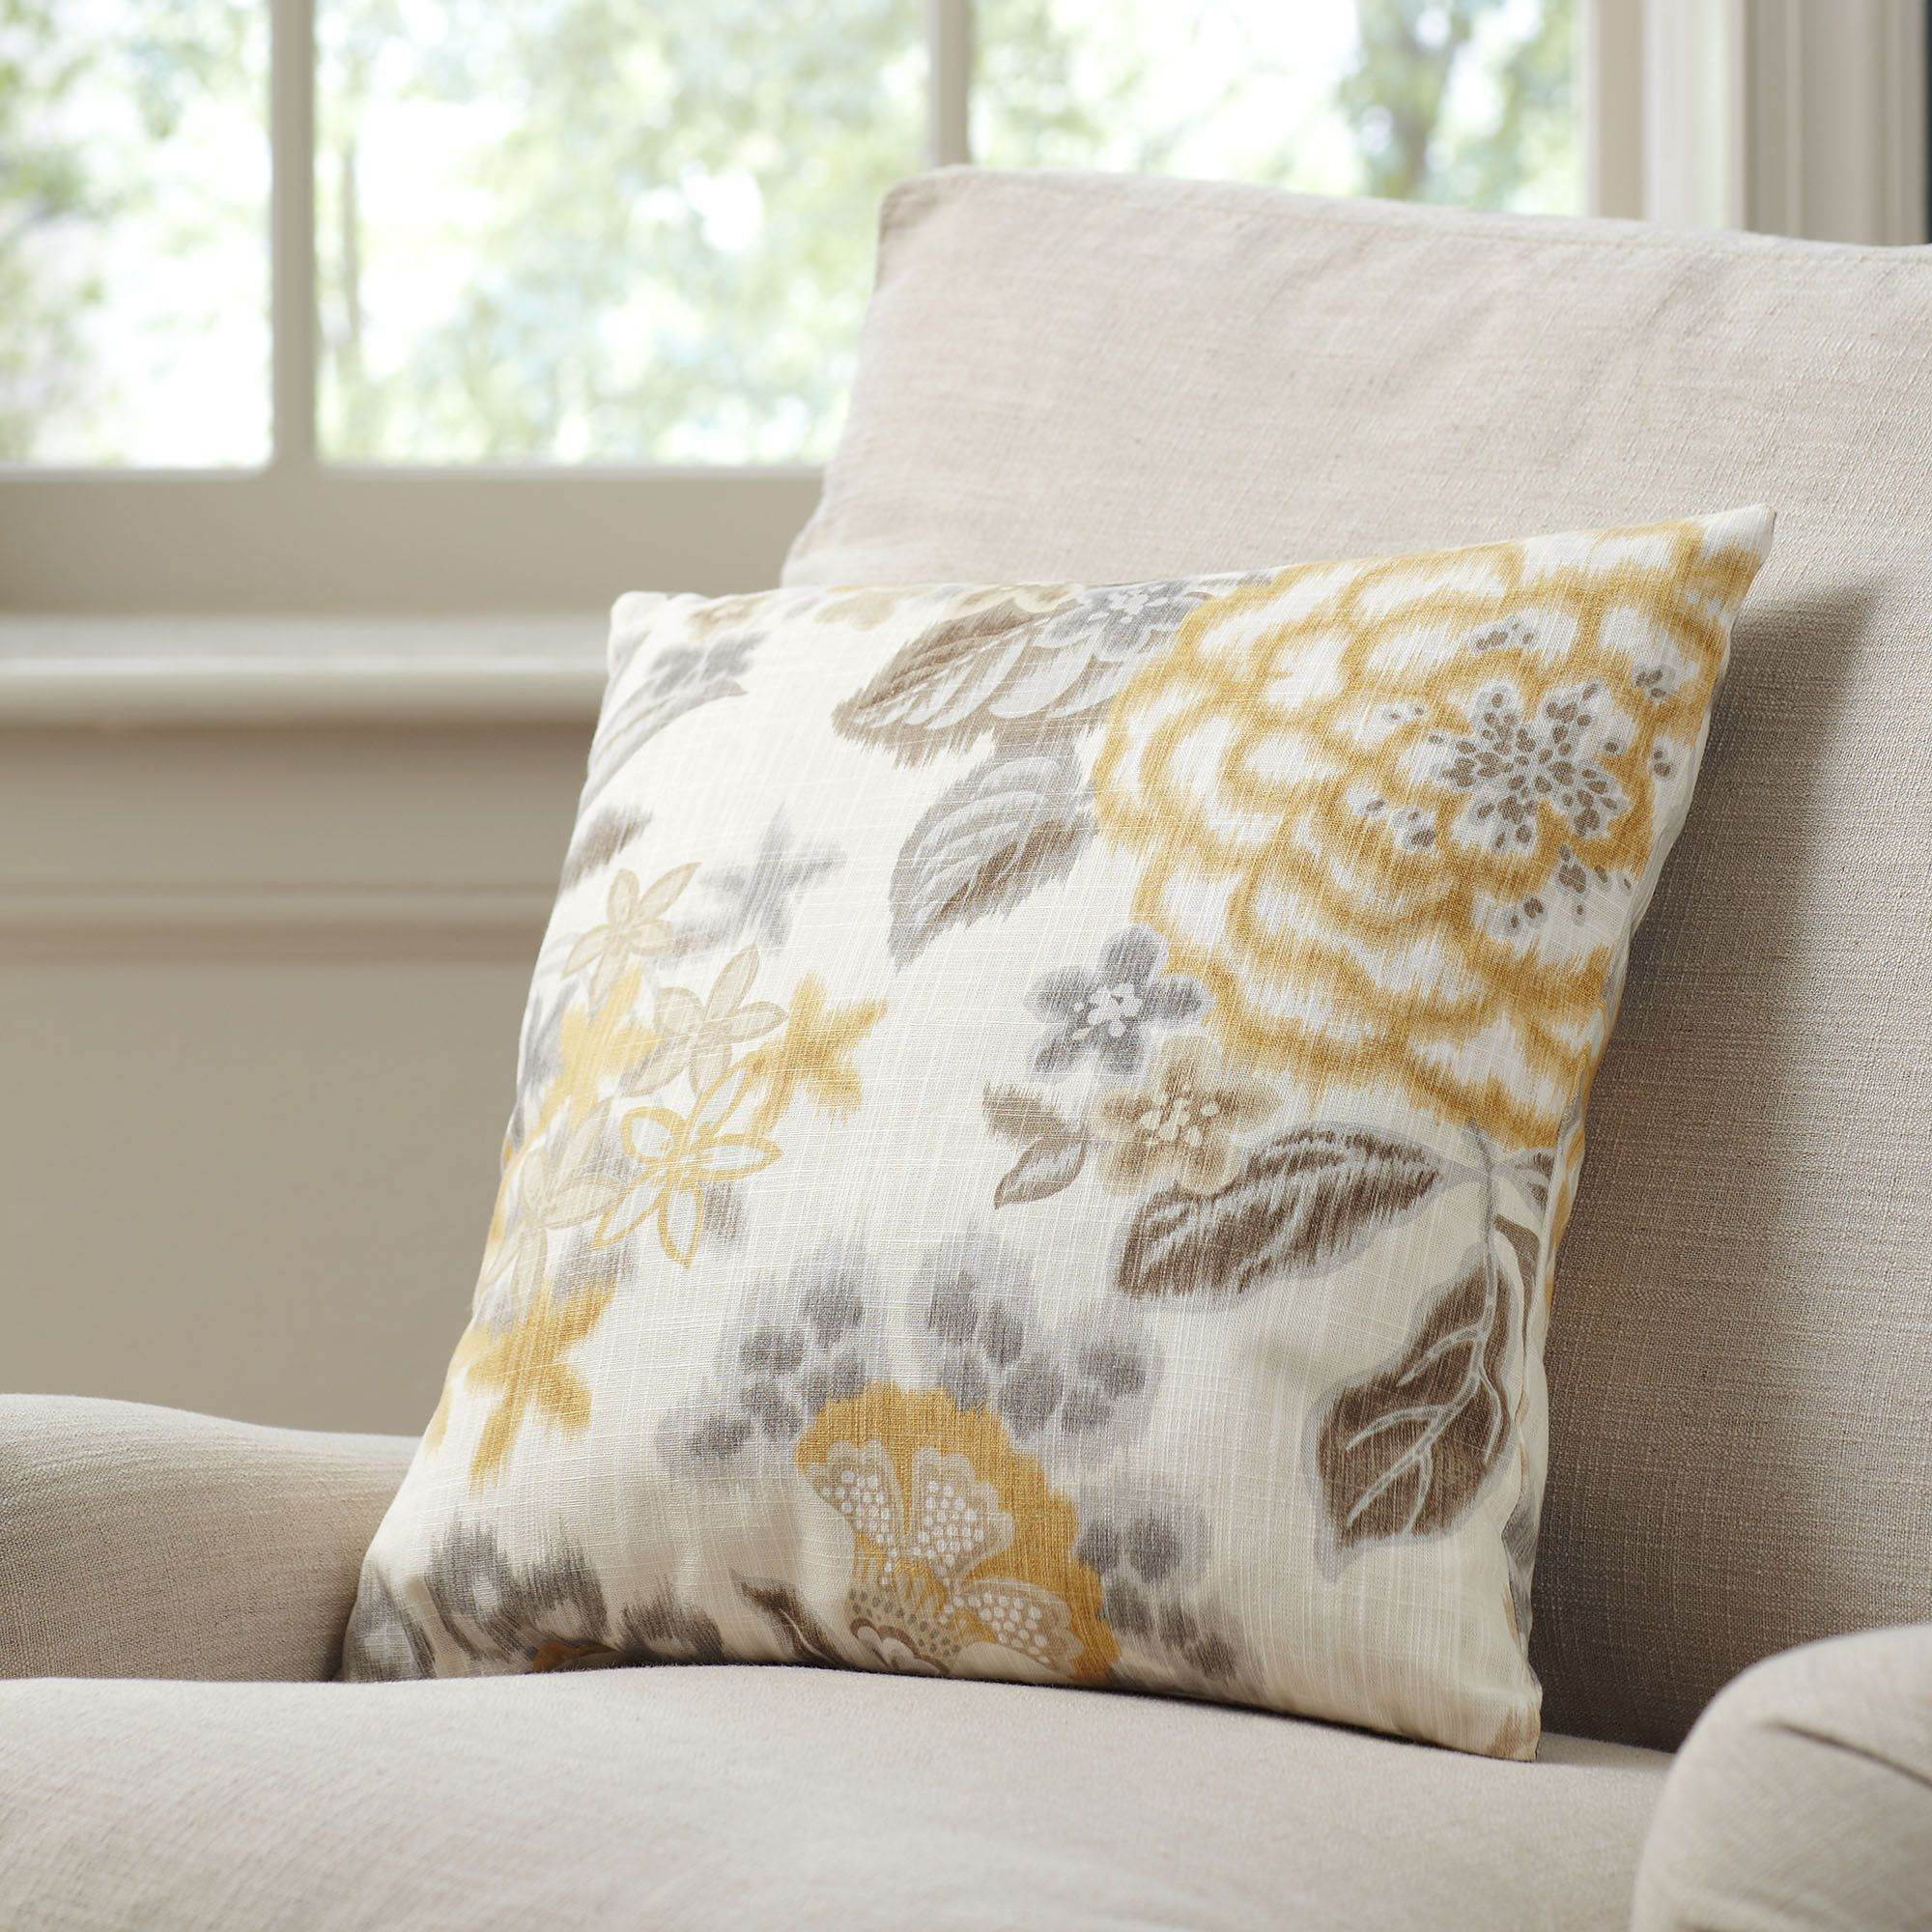 Marguerite Cotton Pillow Cover | Makes a striking accent to any seating area or pairs beautifully with the Marguerite Duvet set. 100 percent cotton. Hidden zipper closure.